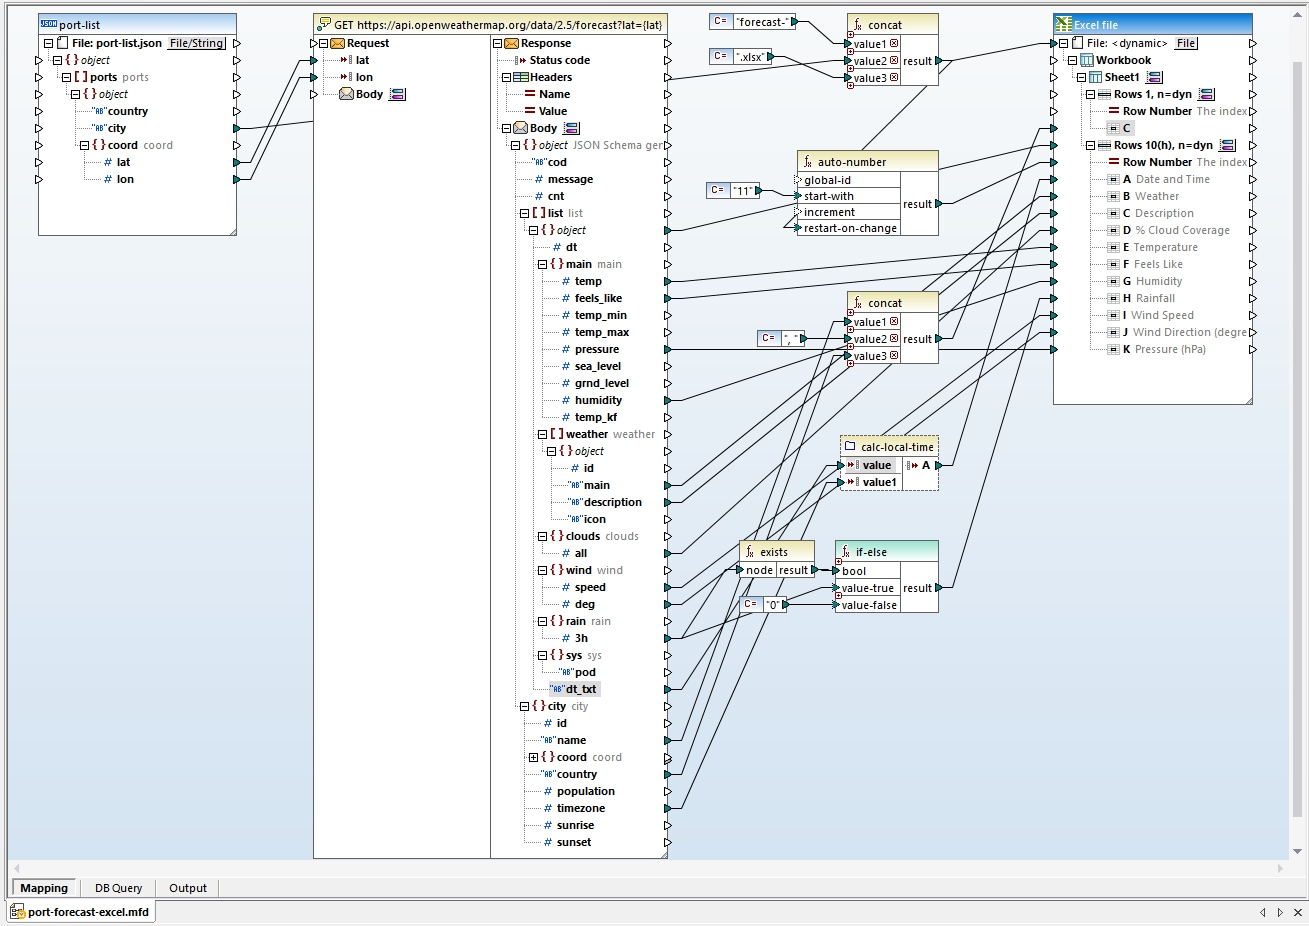 A complete view of the mapping for Web service data integration